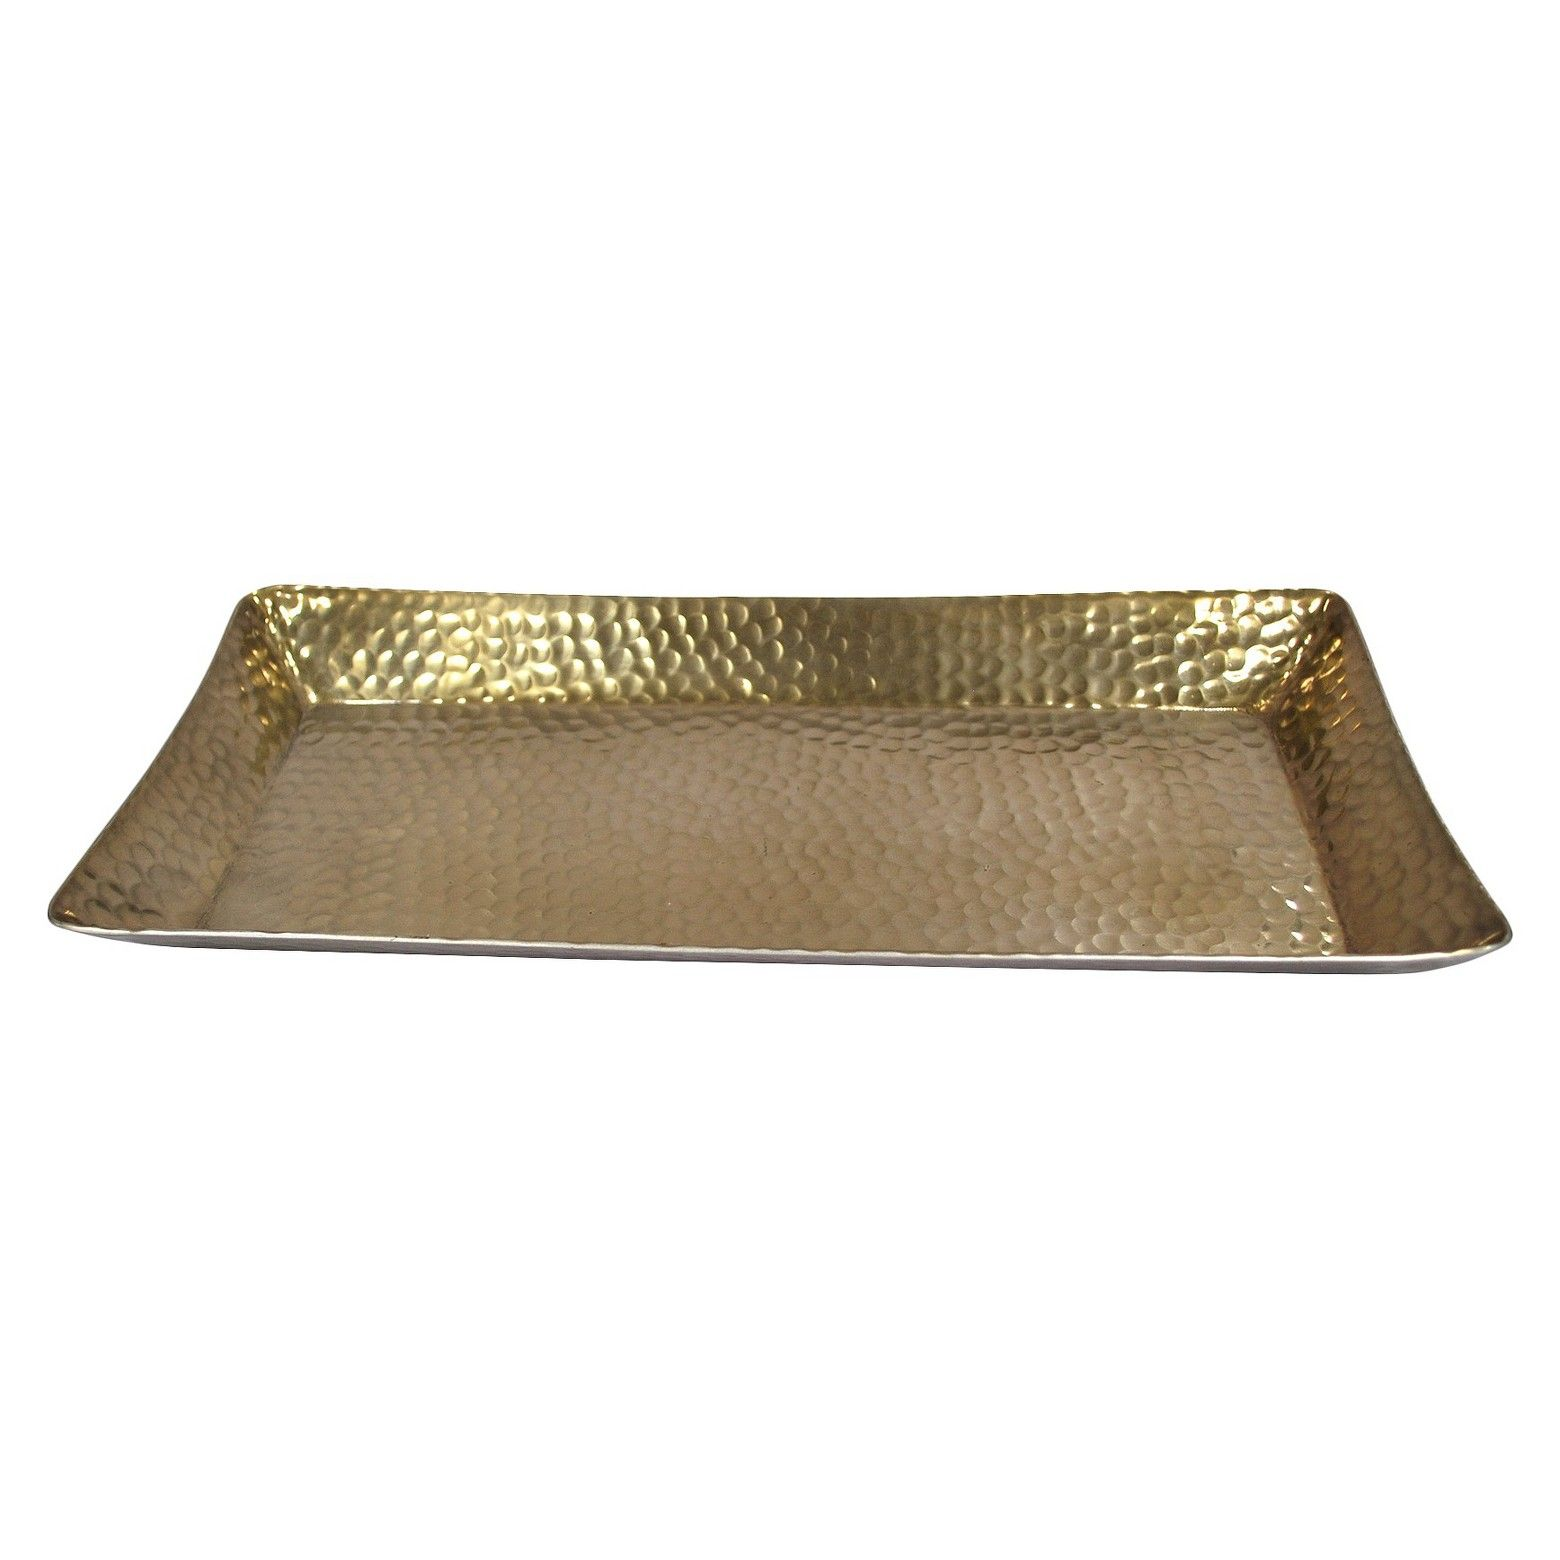 Aluminum Decorative Tray Threshold Metal Hammered Serving Tray  Gold  Trays Ware Fc